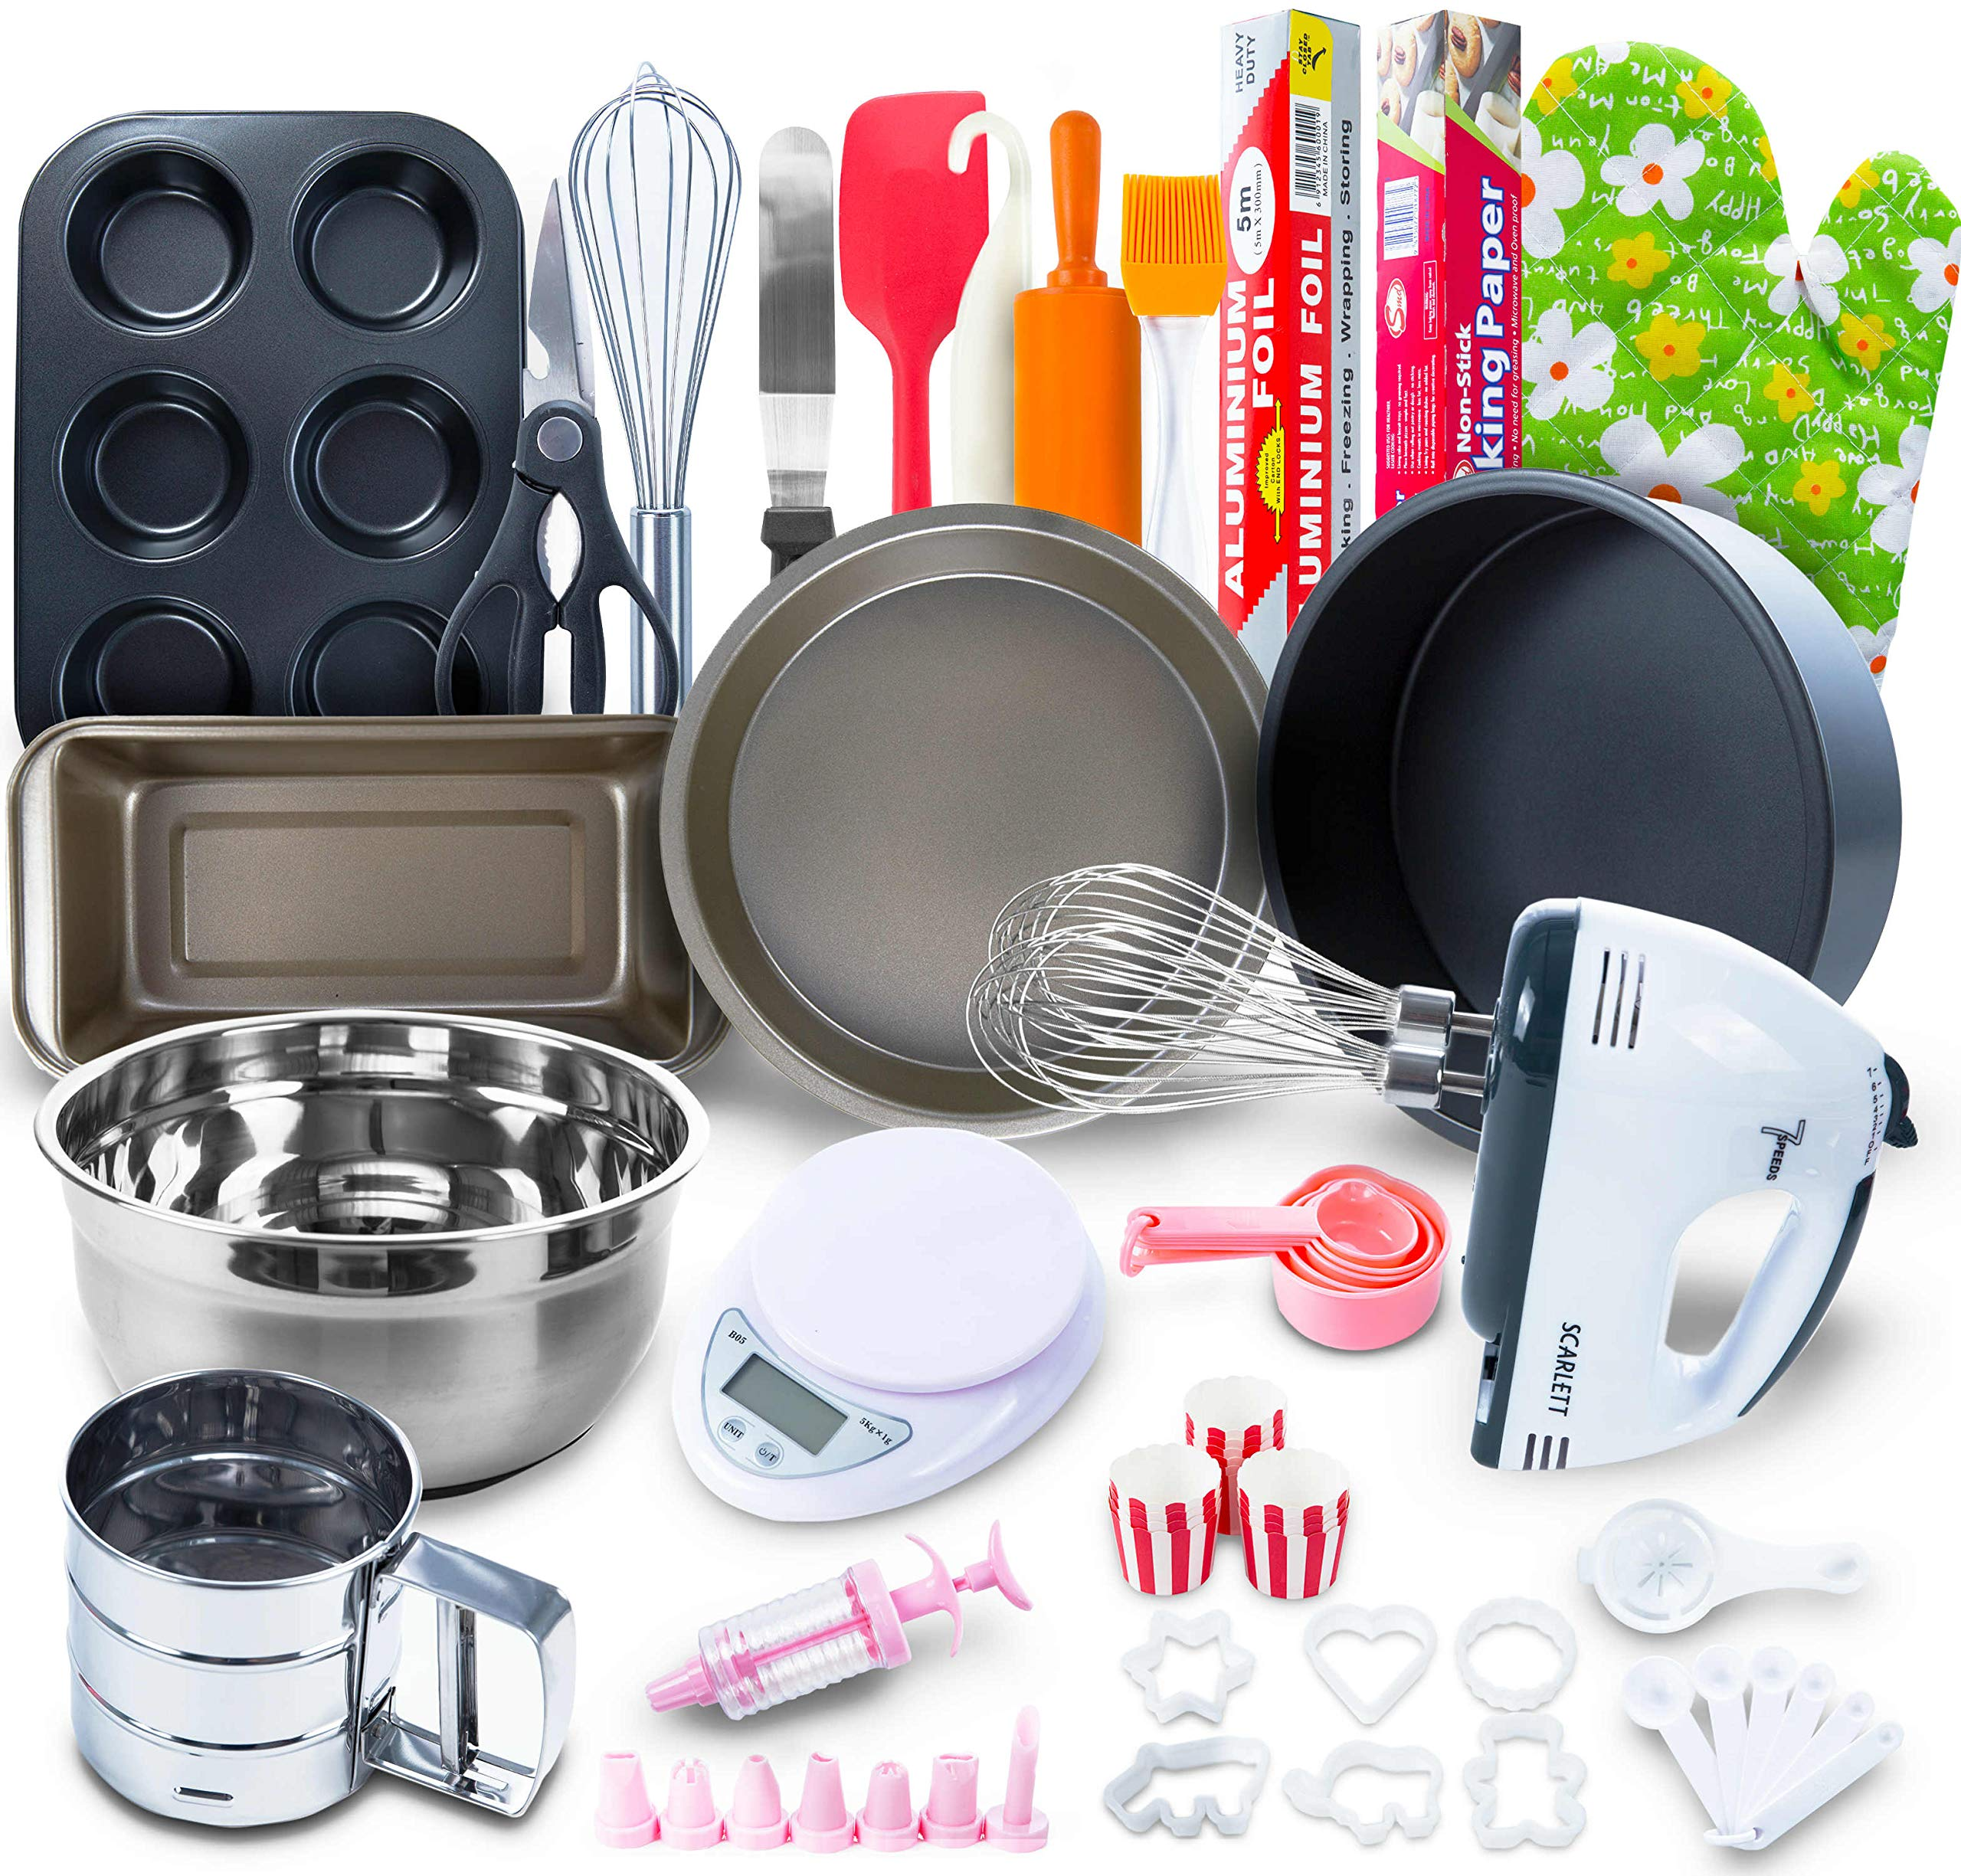 Baking Set for kids and adults - (60 PCS SPECIAL BAKERY EQUIPMENT AND TOOLS) With Hand Mixer, BONUS Recipe Guide, Cake Pans, and More Utensils! Create STUNNING Cakes w/the Cake kit! by Aleeza Cake Wonders